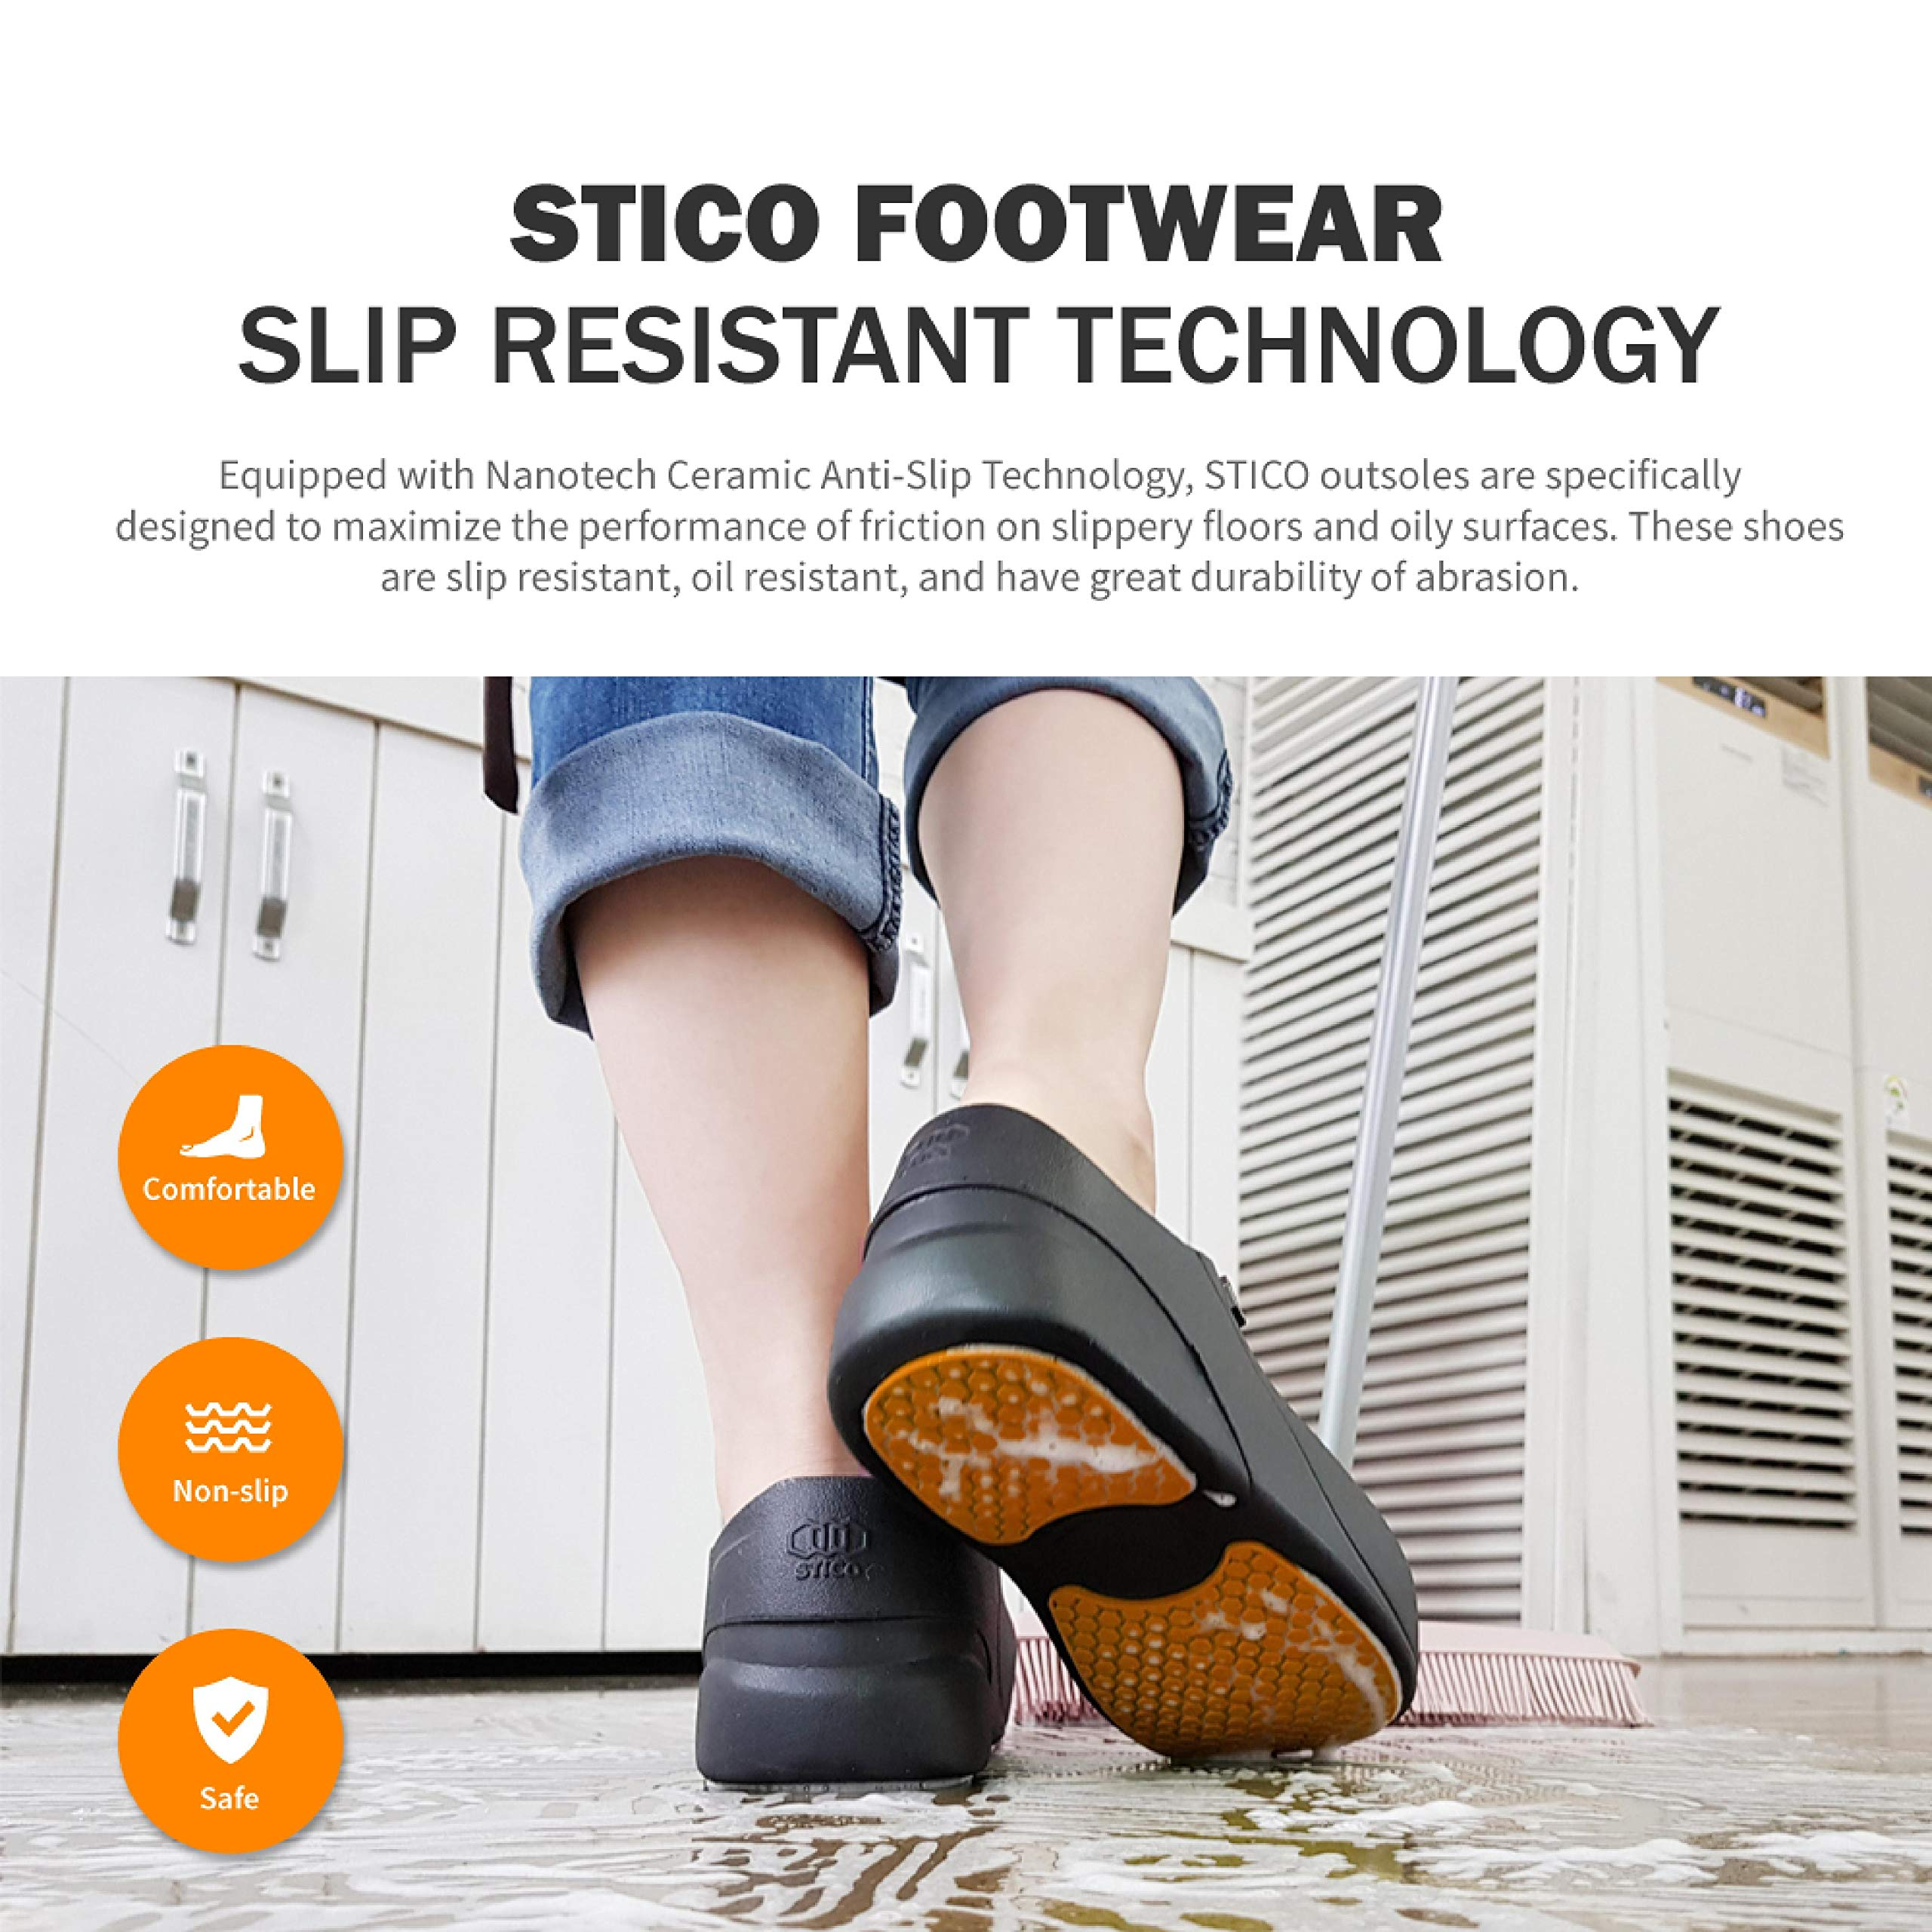 STICO Men's Slip Resistant Chef Clogs, Professional Non-Slip Work Shoes with Air Vents for Restaurant Hospital Nursing Garden [Black/US Men 5] by Stico (Image #2)